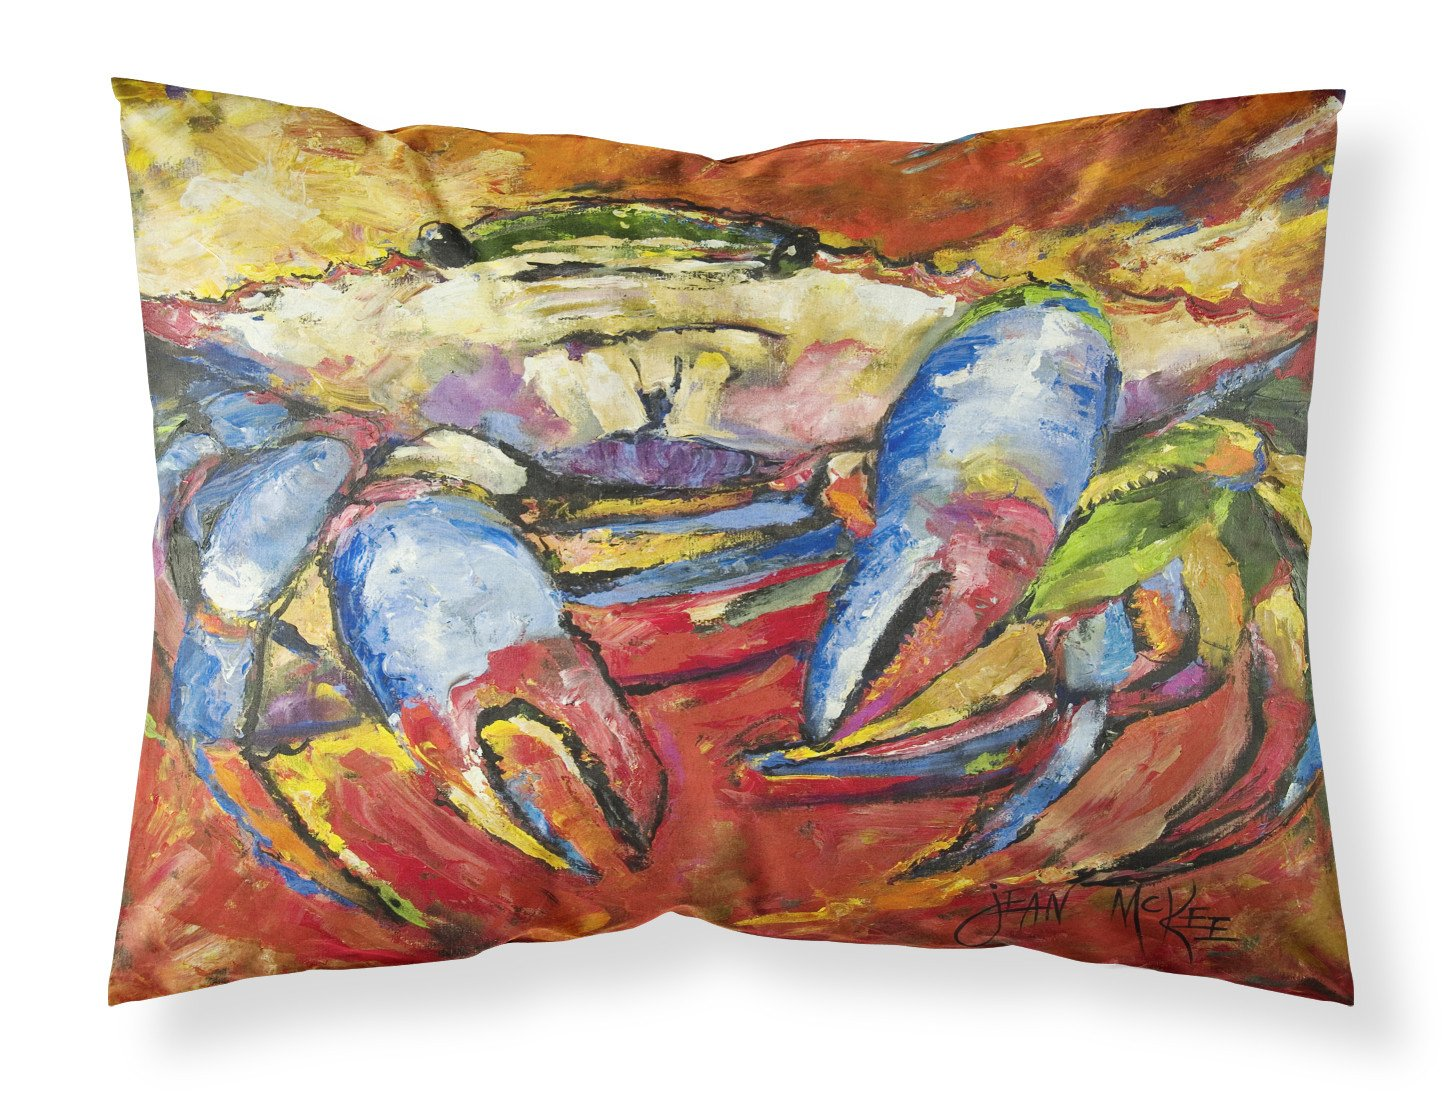 Buy this Blue Crab Red Fabric Standard Pillowcase JMK1107PILLOWCASE